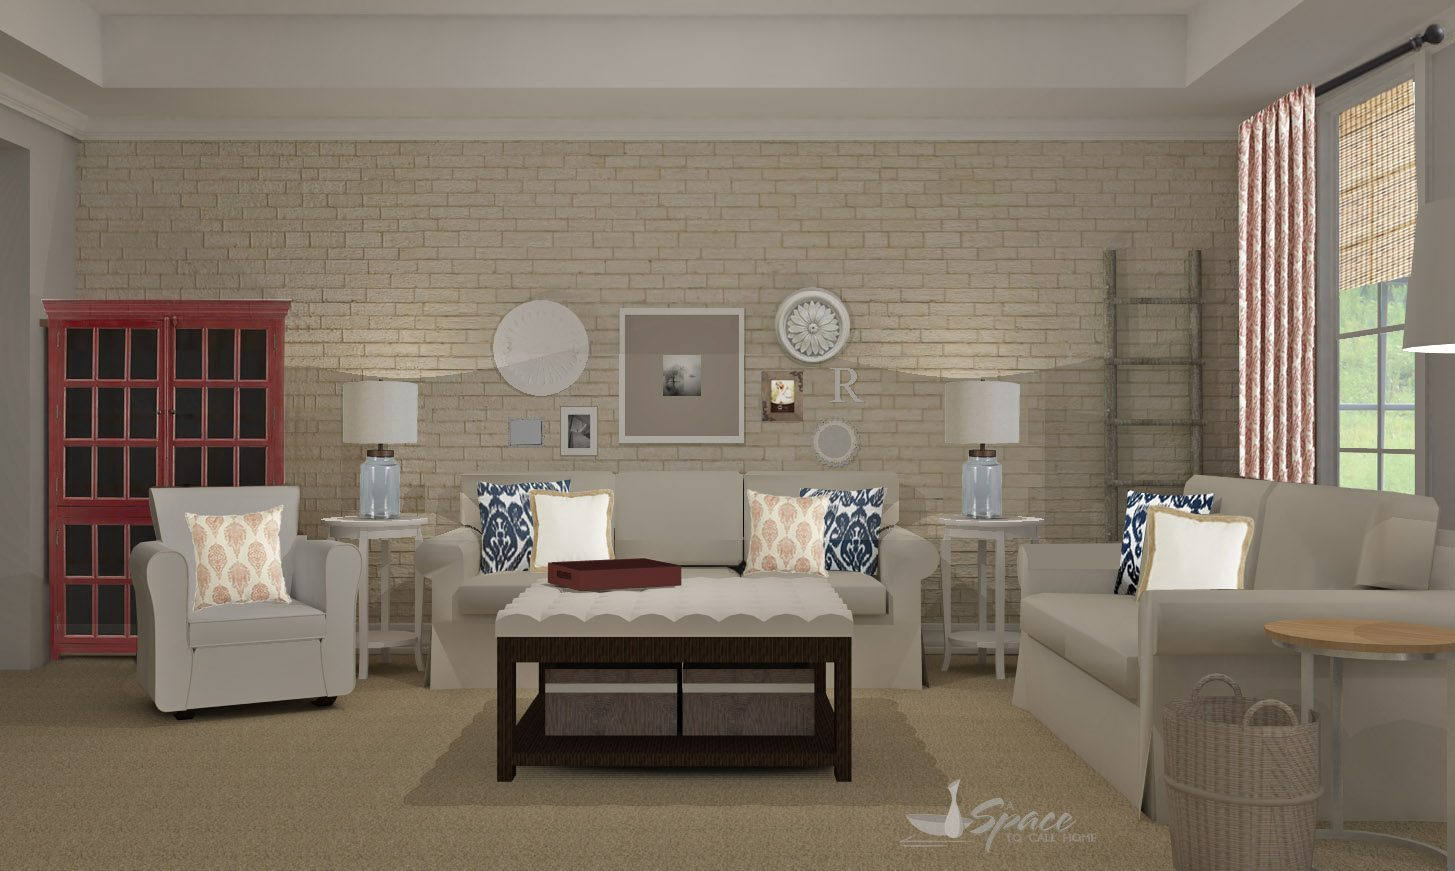 Transitional Living Room Design Rustic Transitional Living Room Design A Space To Call Home